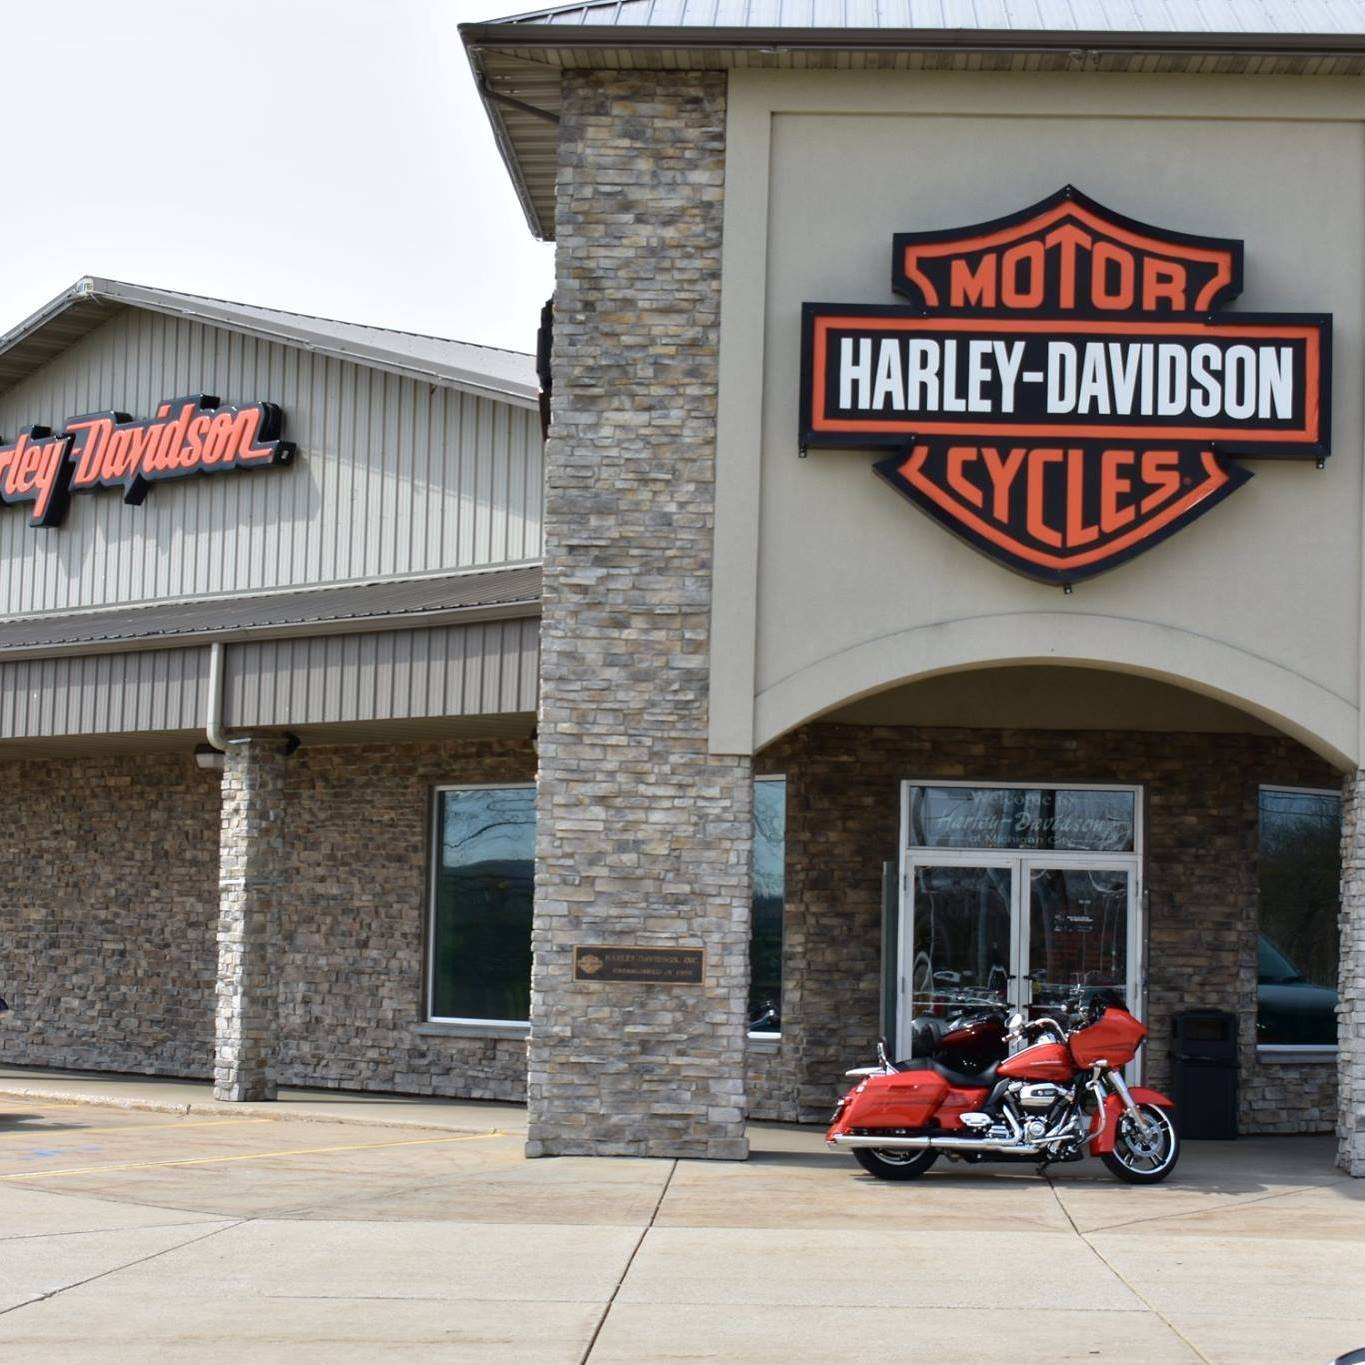 Harley Davidson Michigan >> Harley Davidson Shop Of Michigan City Visit Michigan City